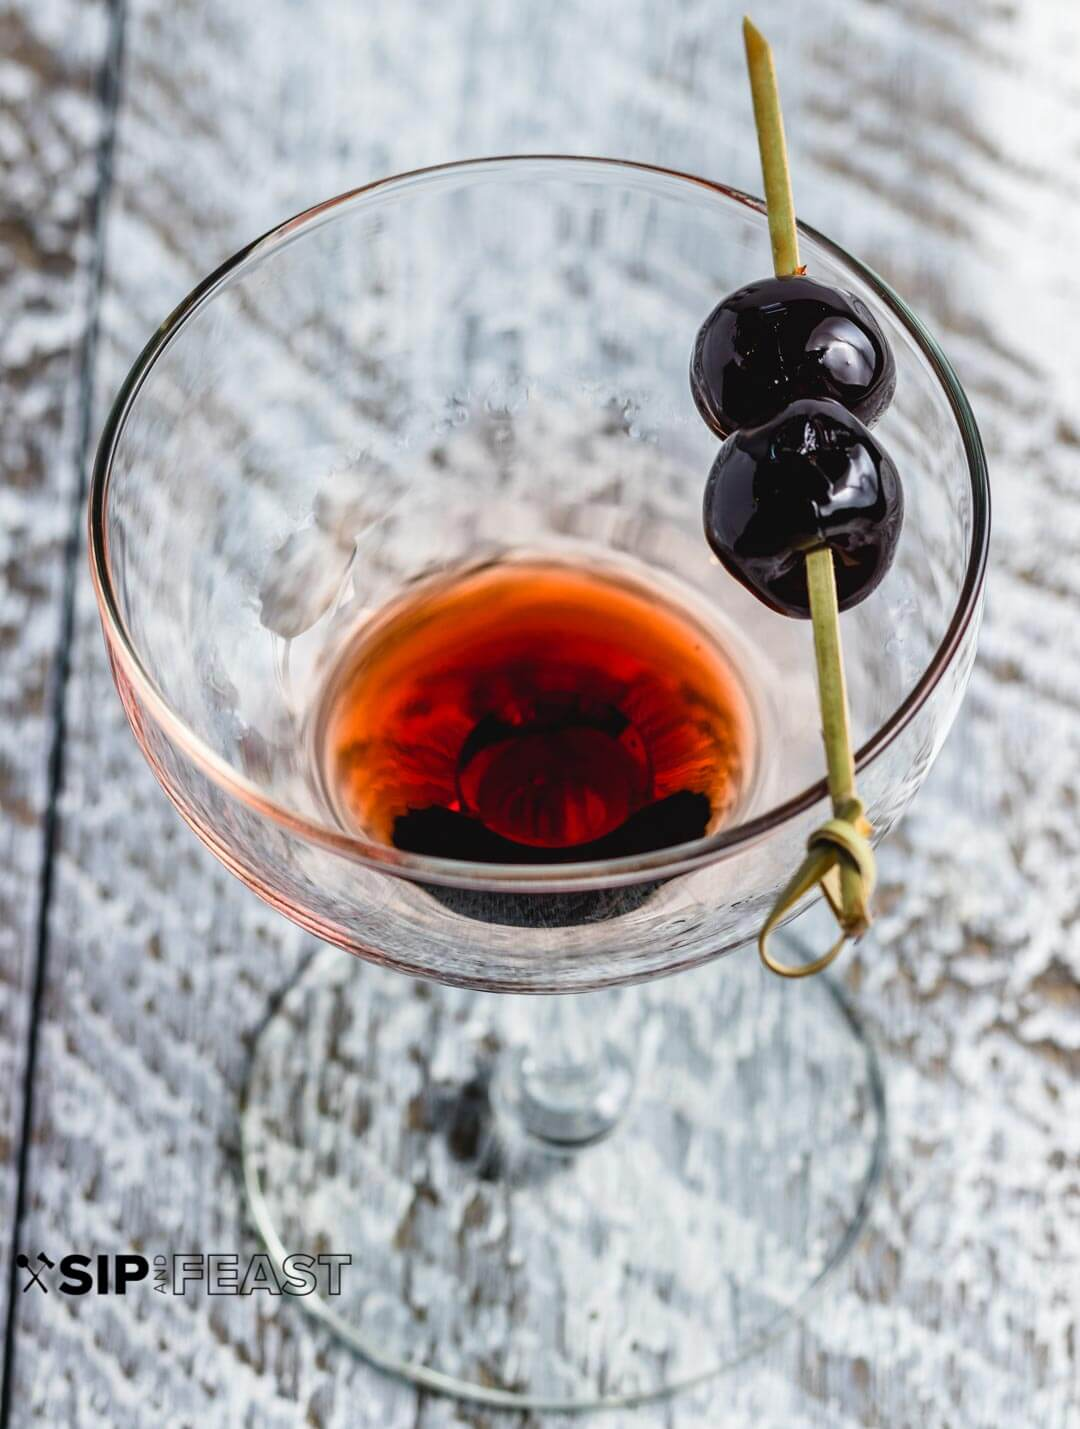 A glass with cherry syrup and two cherries on a toothpick.